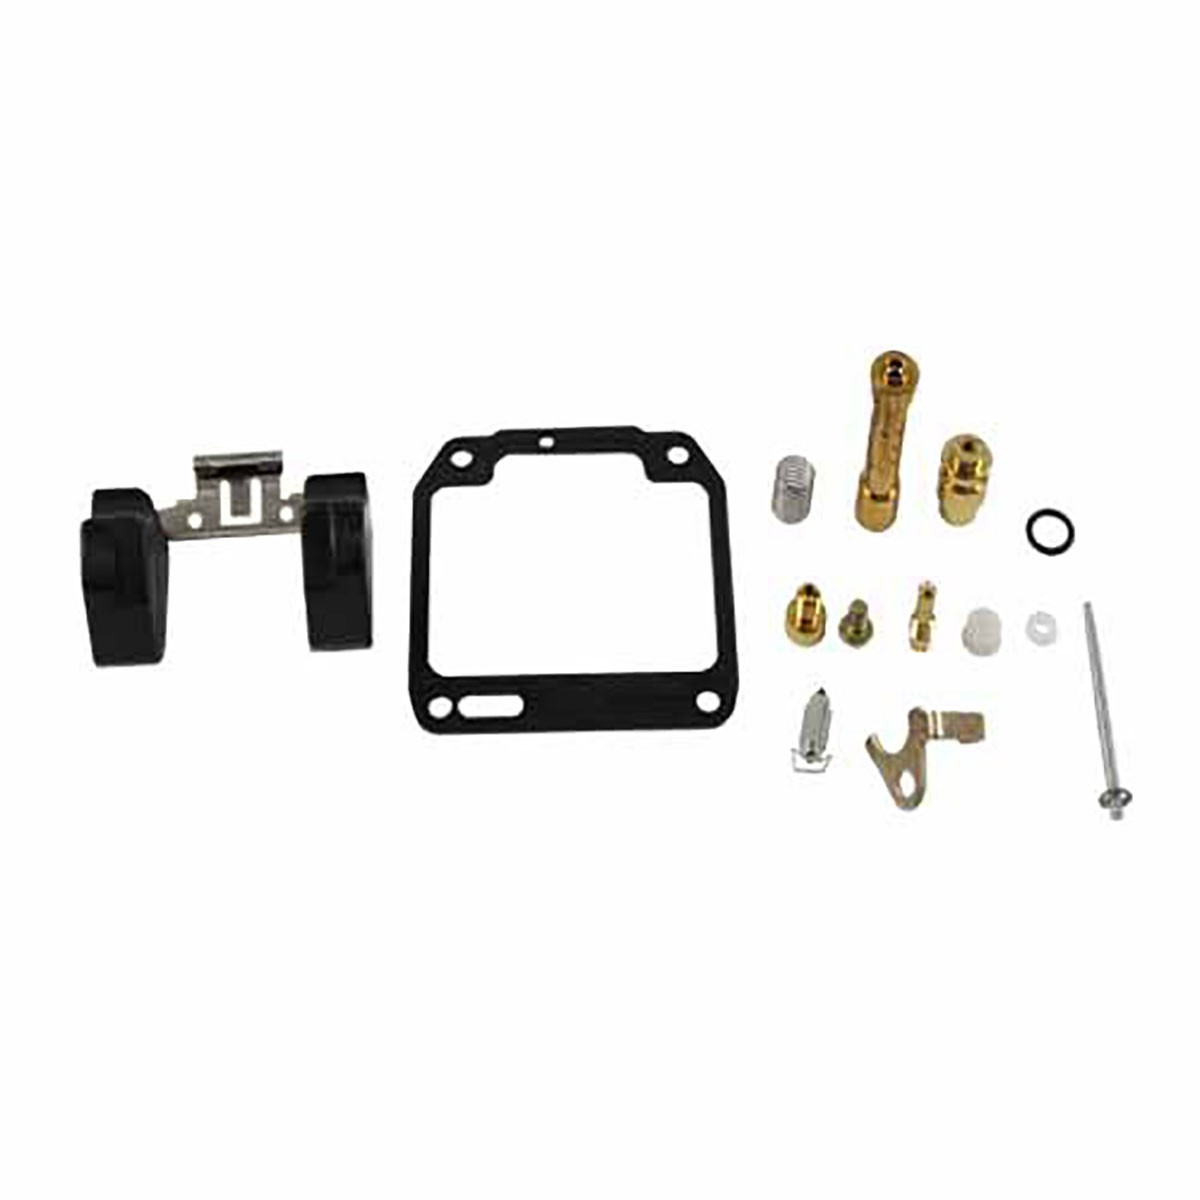 Kit Reparo Do Carburador Suzuki Burgman 125 An 2005 Até 2010